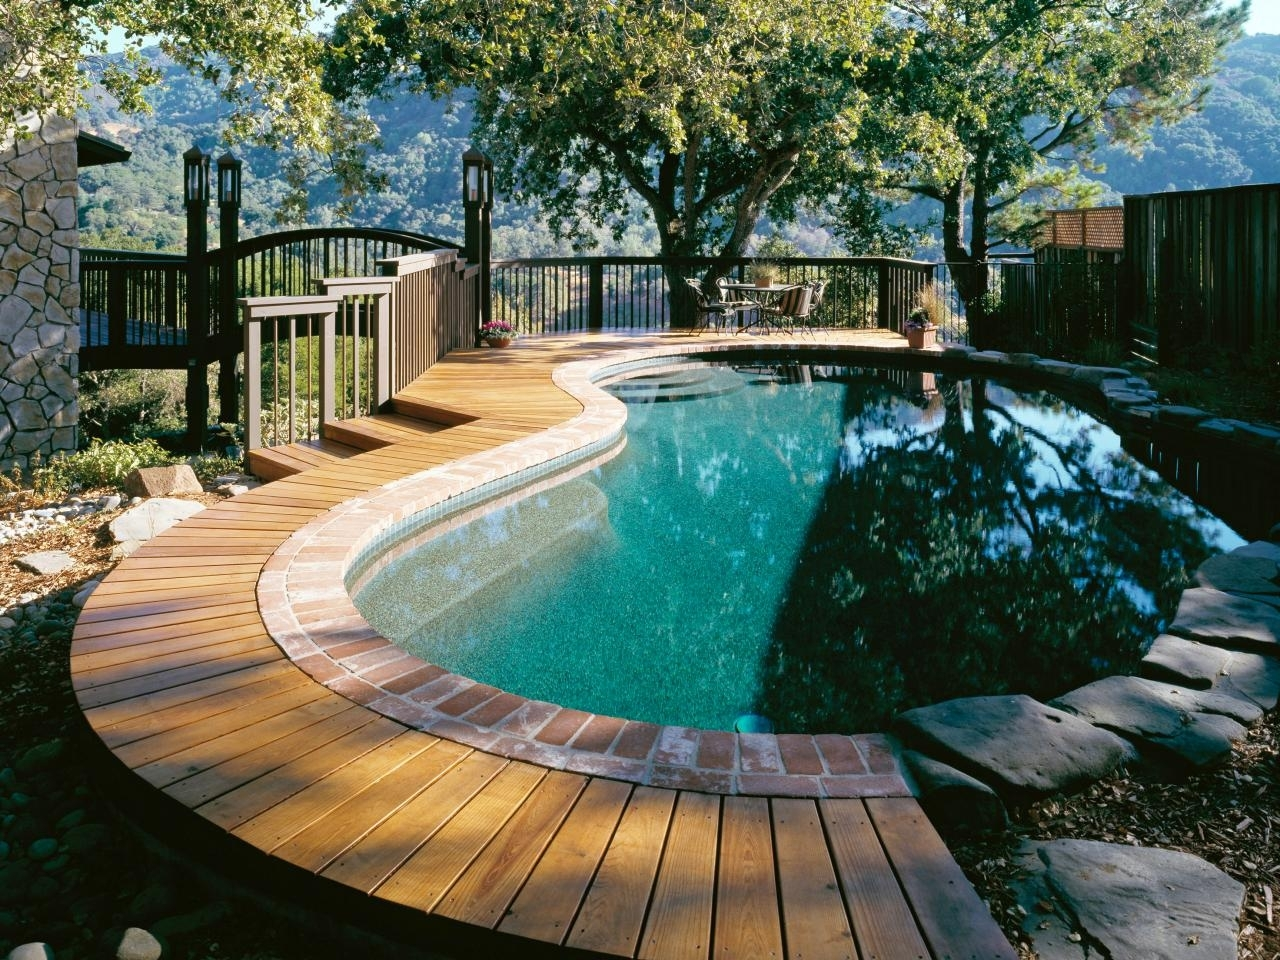 10 Trendy Deck Ideas For Above Ground Pools %name 2021